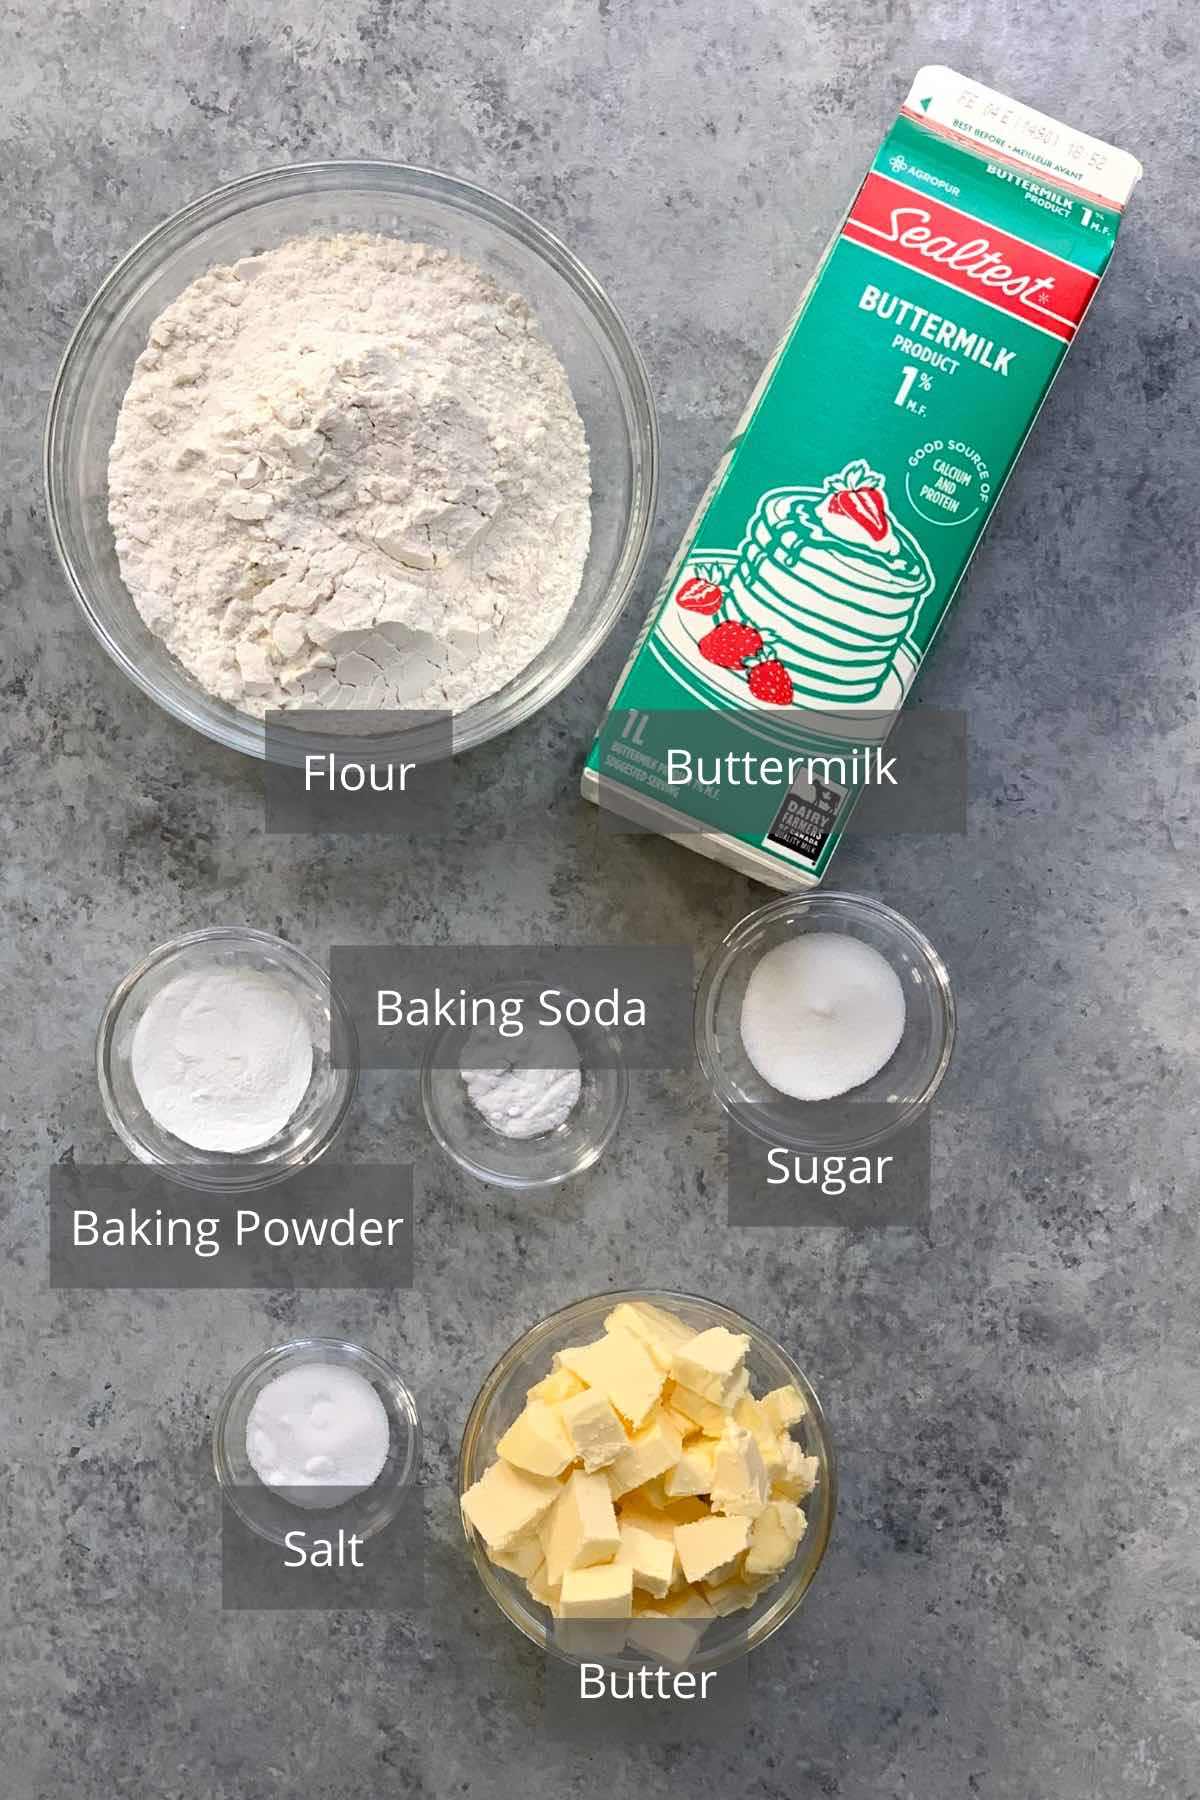 Popeyes Biscuits ingredients on the counter.